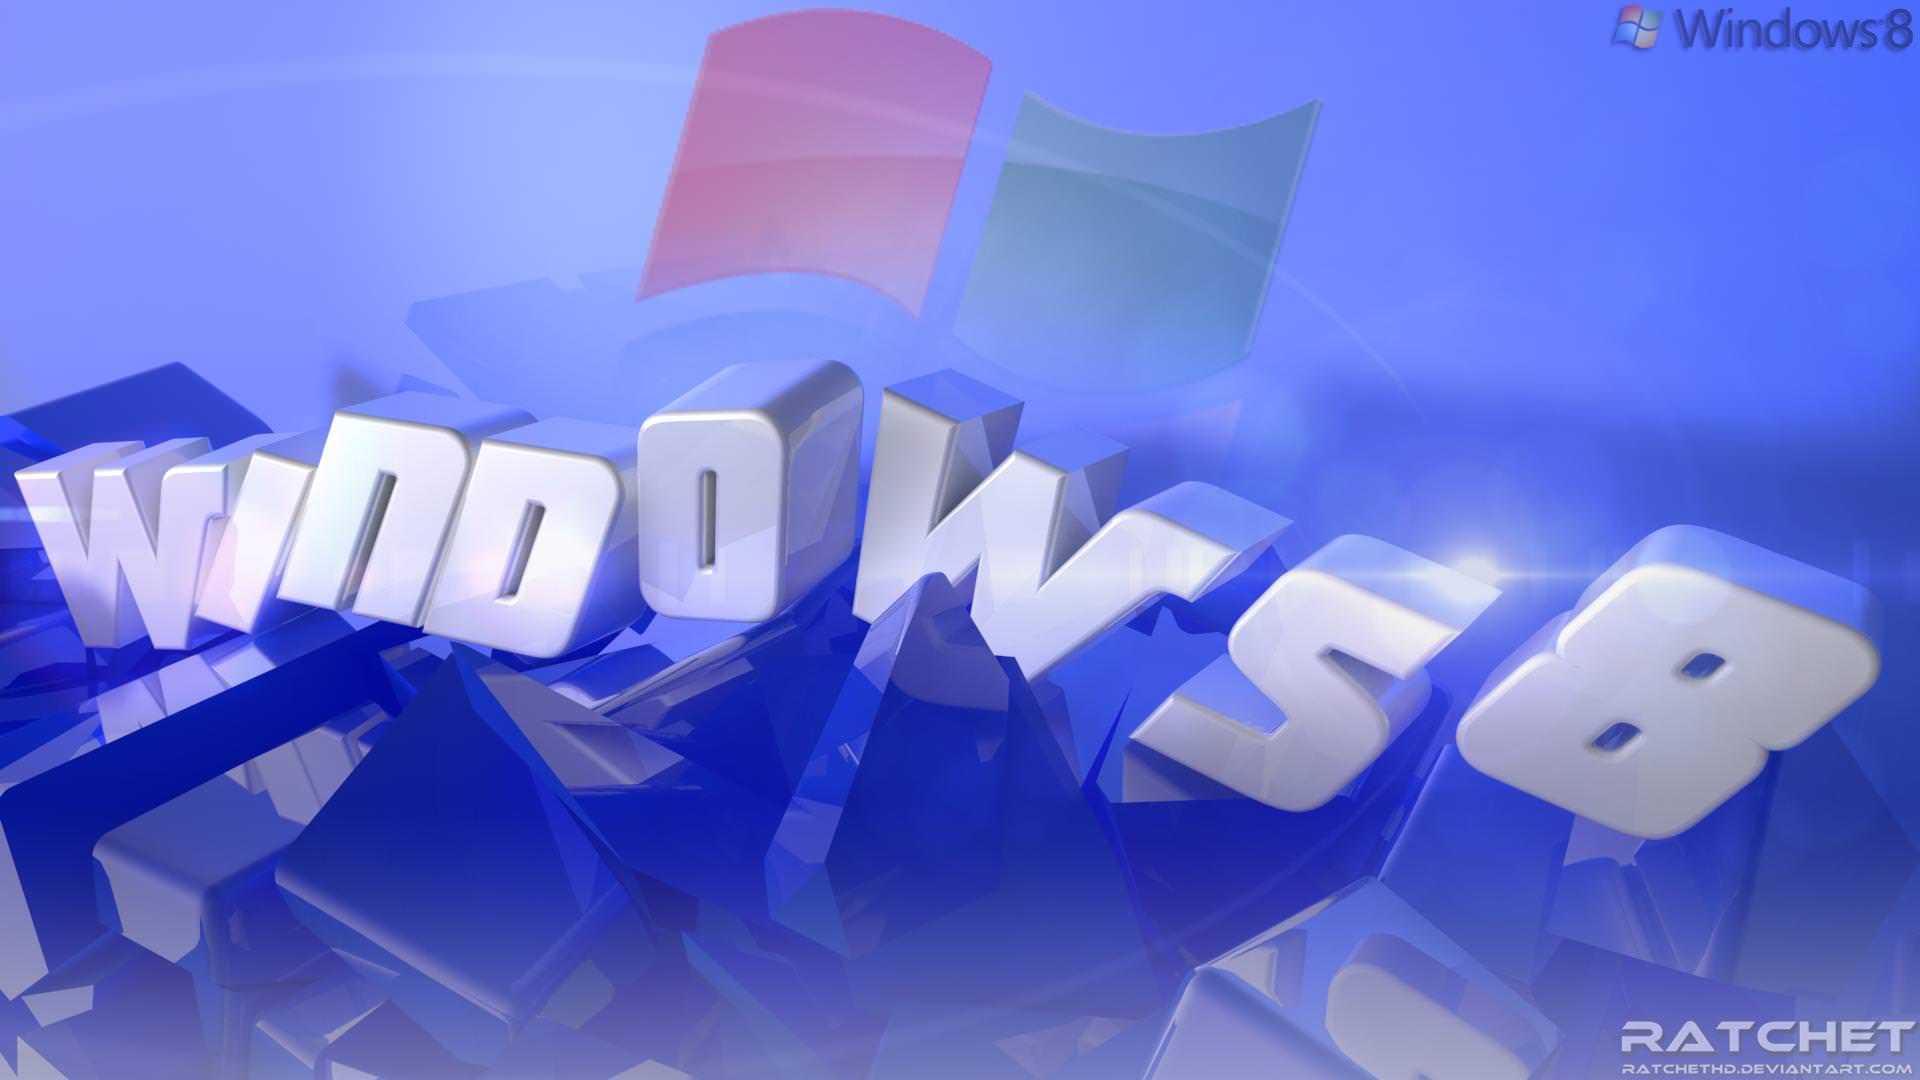 Blue Colored Windows 8 Wallpaper